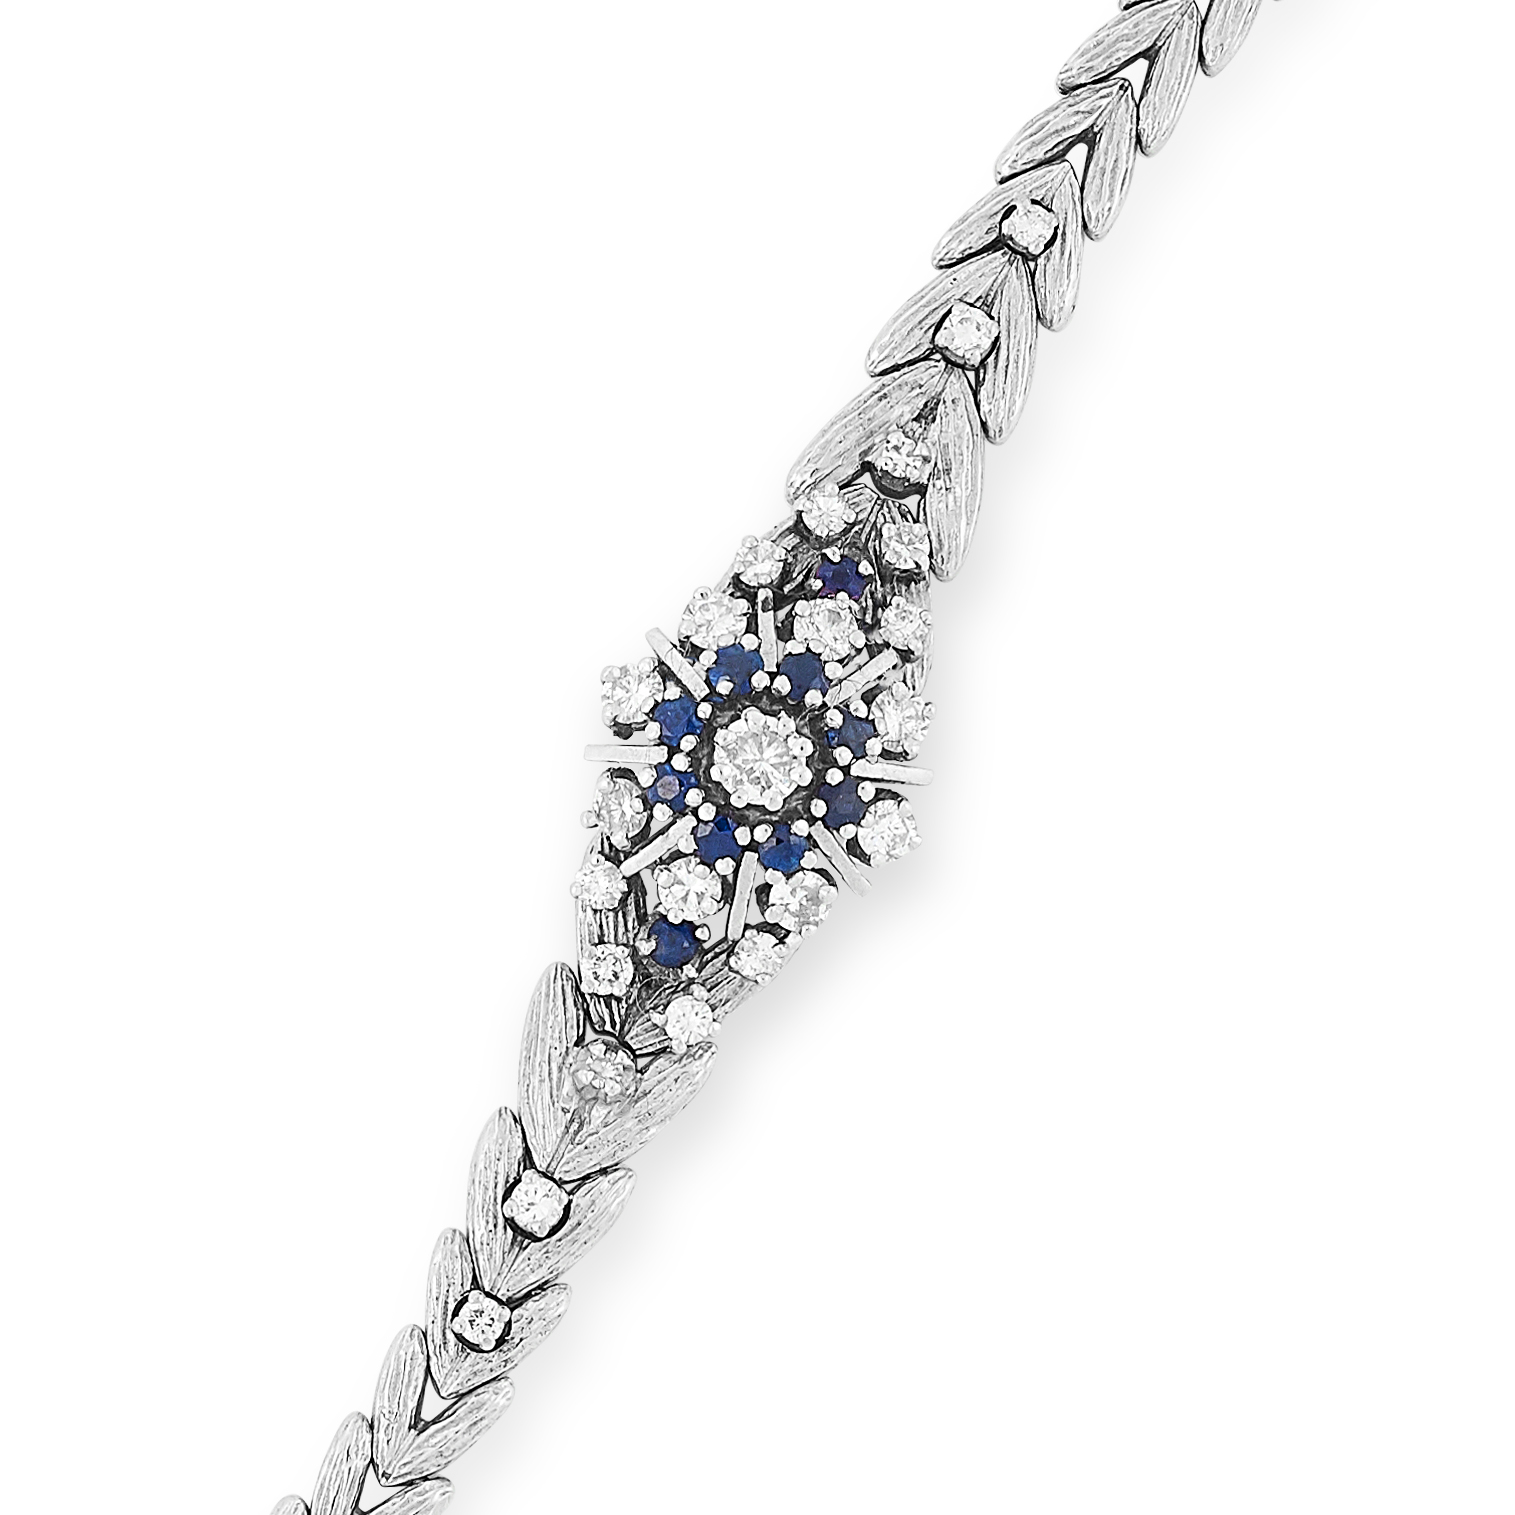 SAPPHIRE AND DIAMOND BRACELET the fancy link chain is set with round cut diamonds and sapphires, - Image 2 of 2